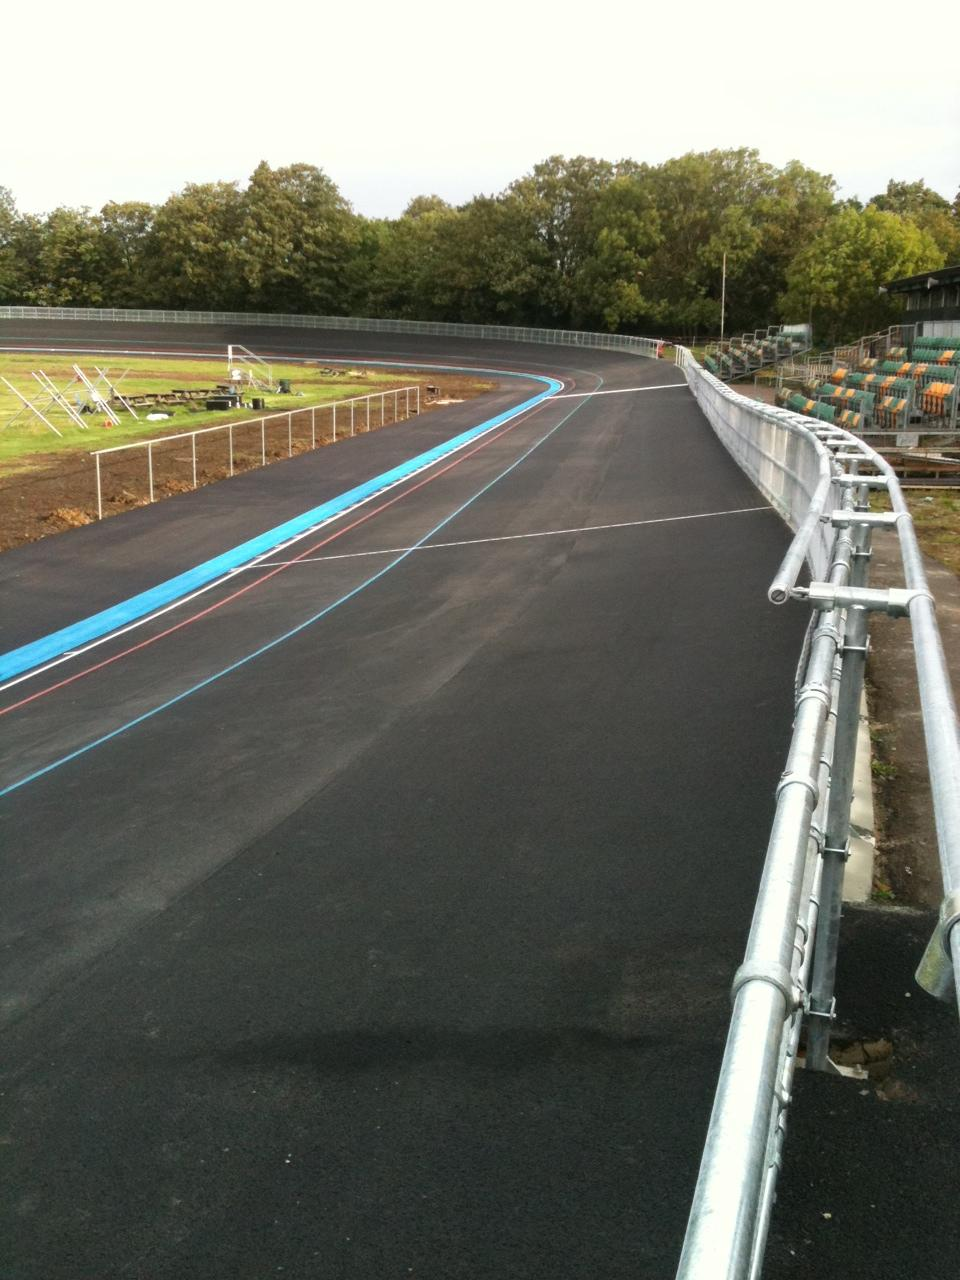 Herne Hill new track pic: www.britishcycling.org.uk